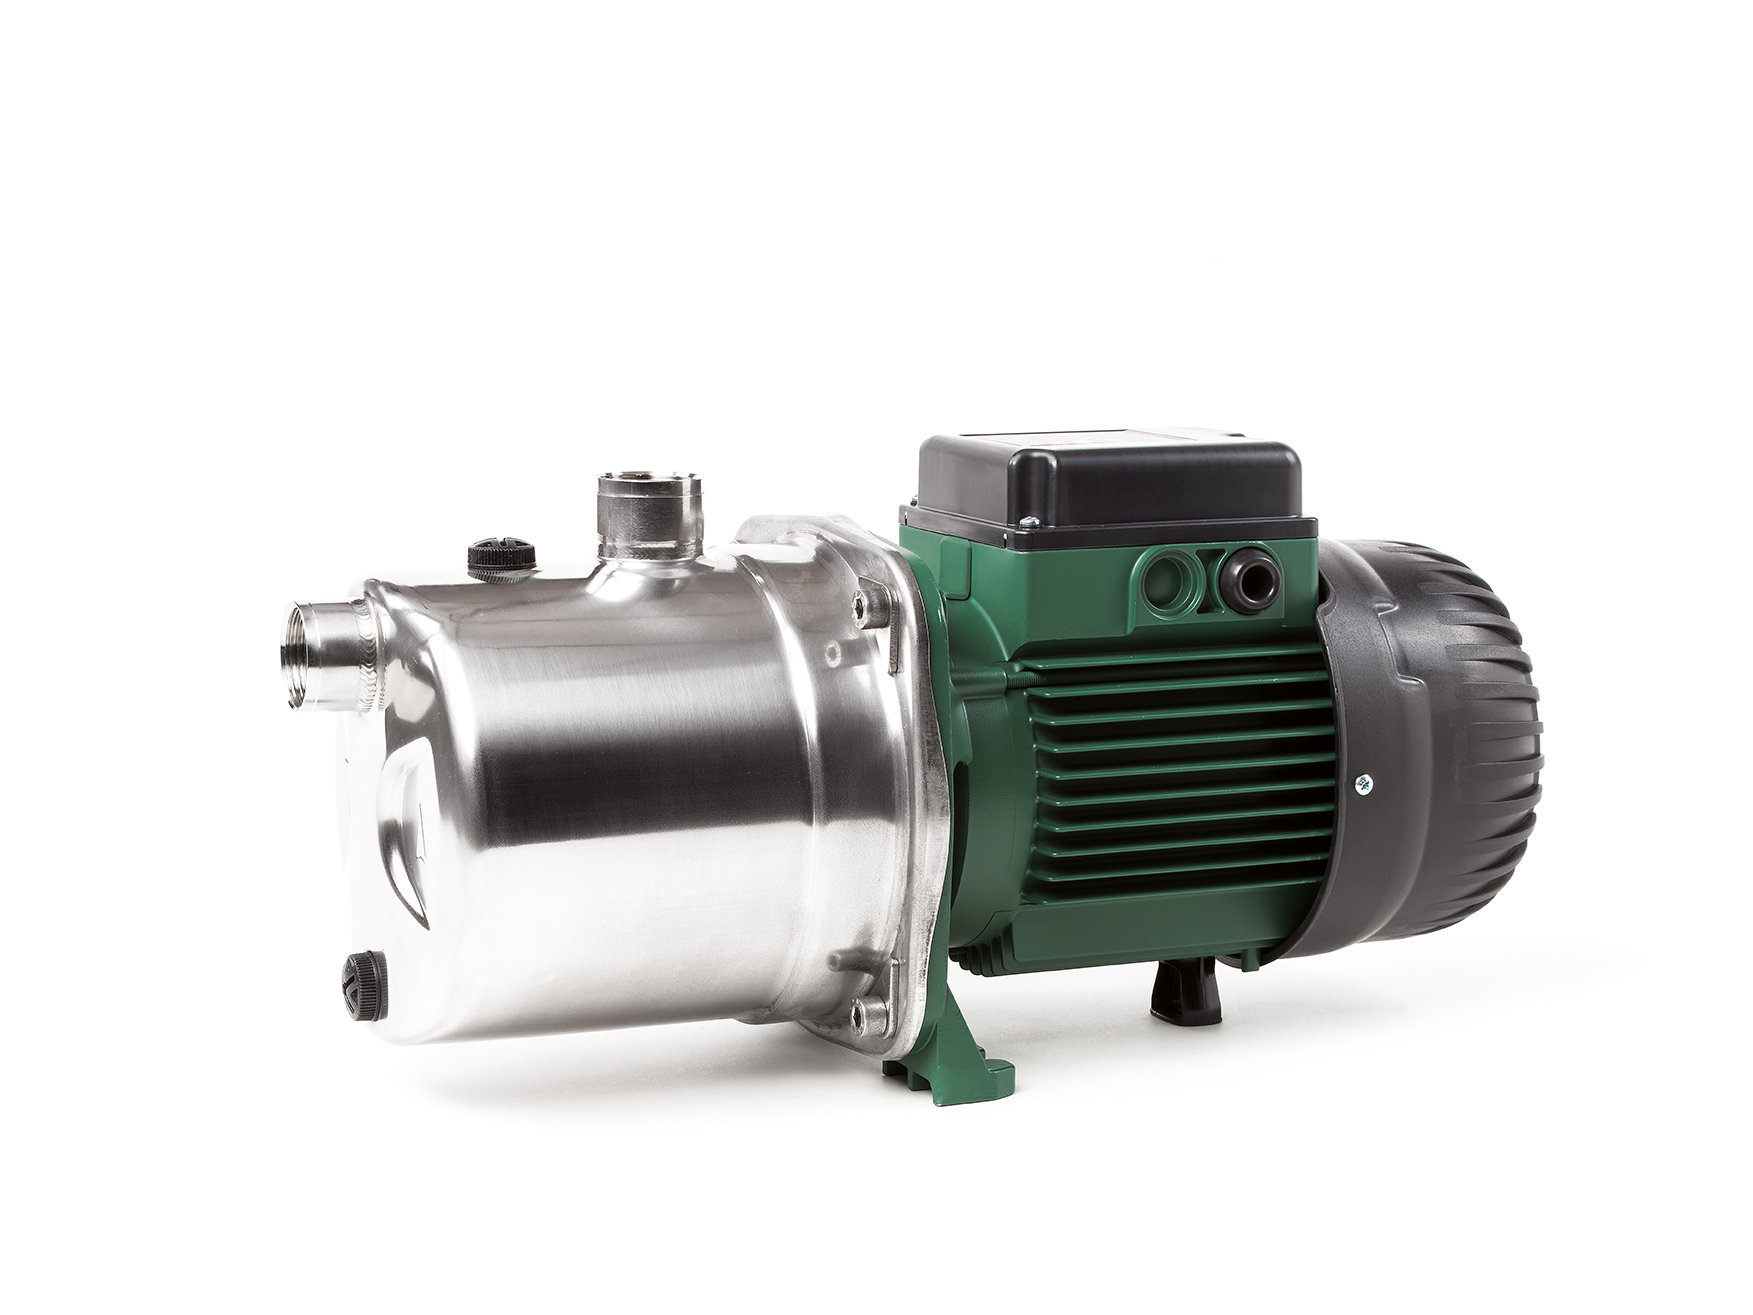 JETINOX 102 M DAB Self-priming Centrifugal Electric-pump Single phase stainless steel 1 Hp